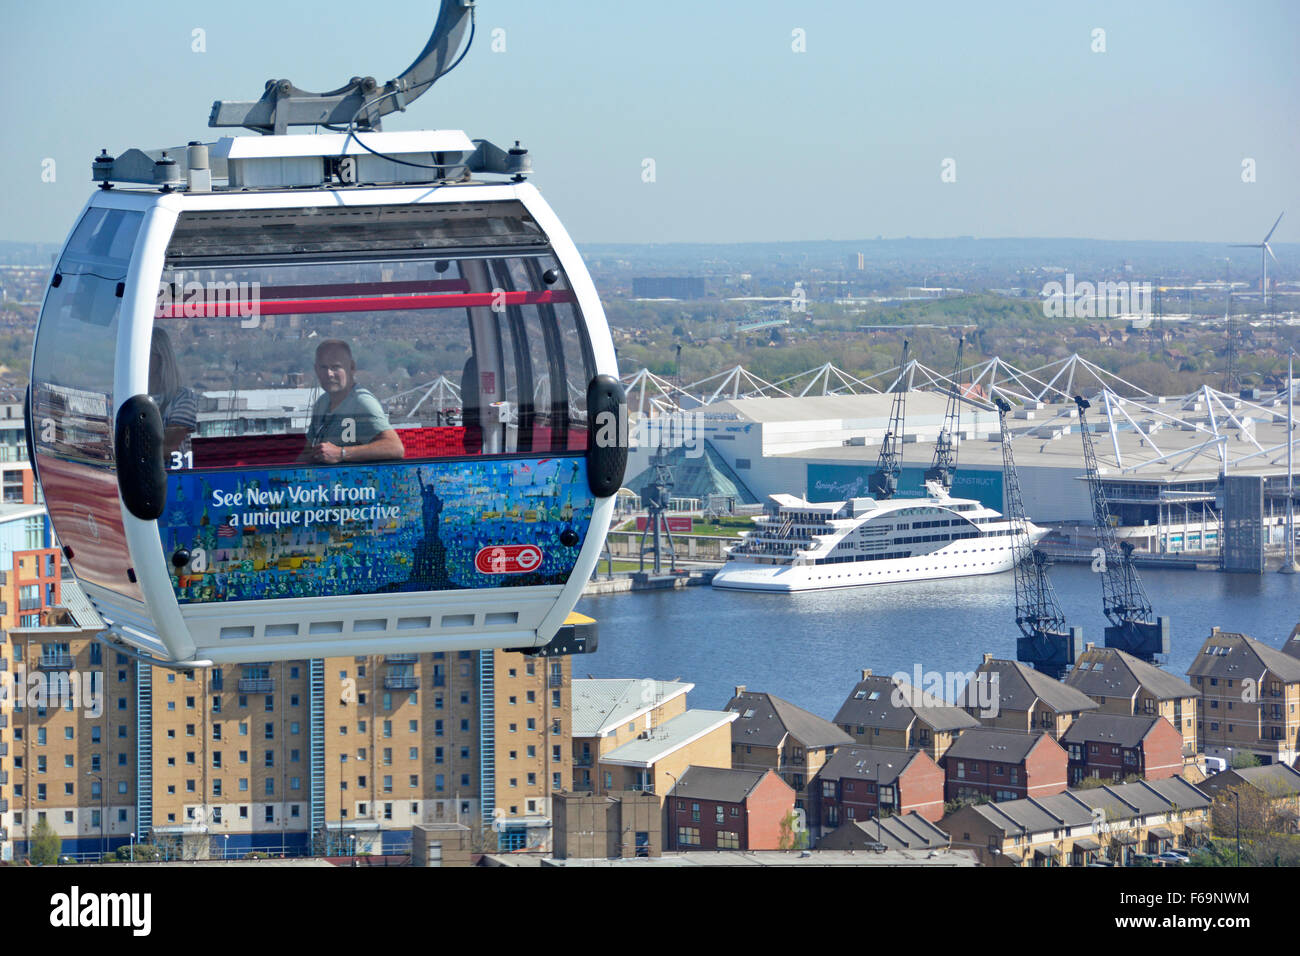 Emirates cable car passengers in cable car crossing over part of London Docklands East London with floating hotel - Stock Image